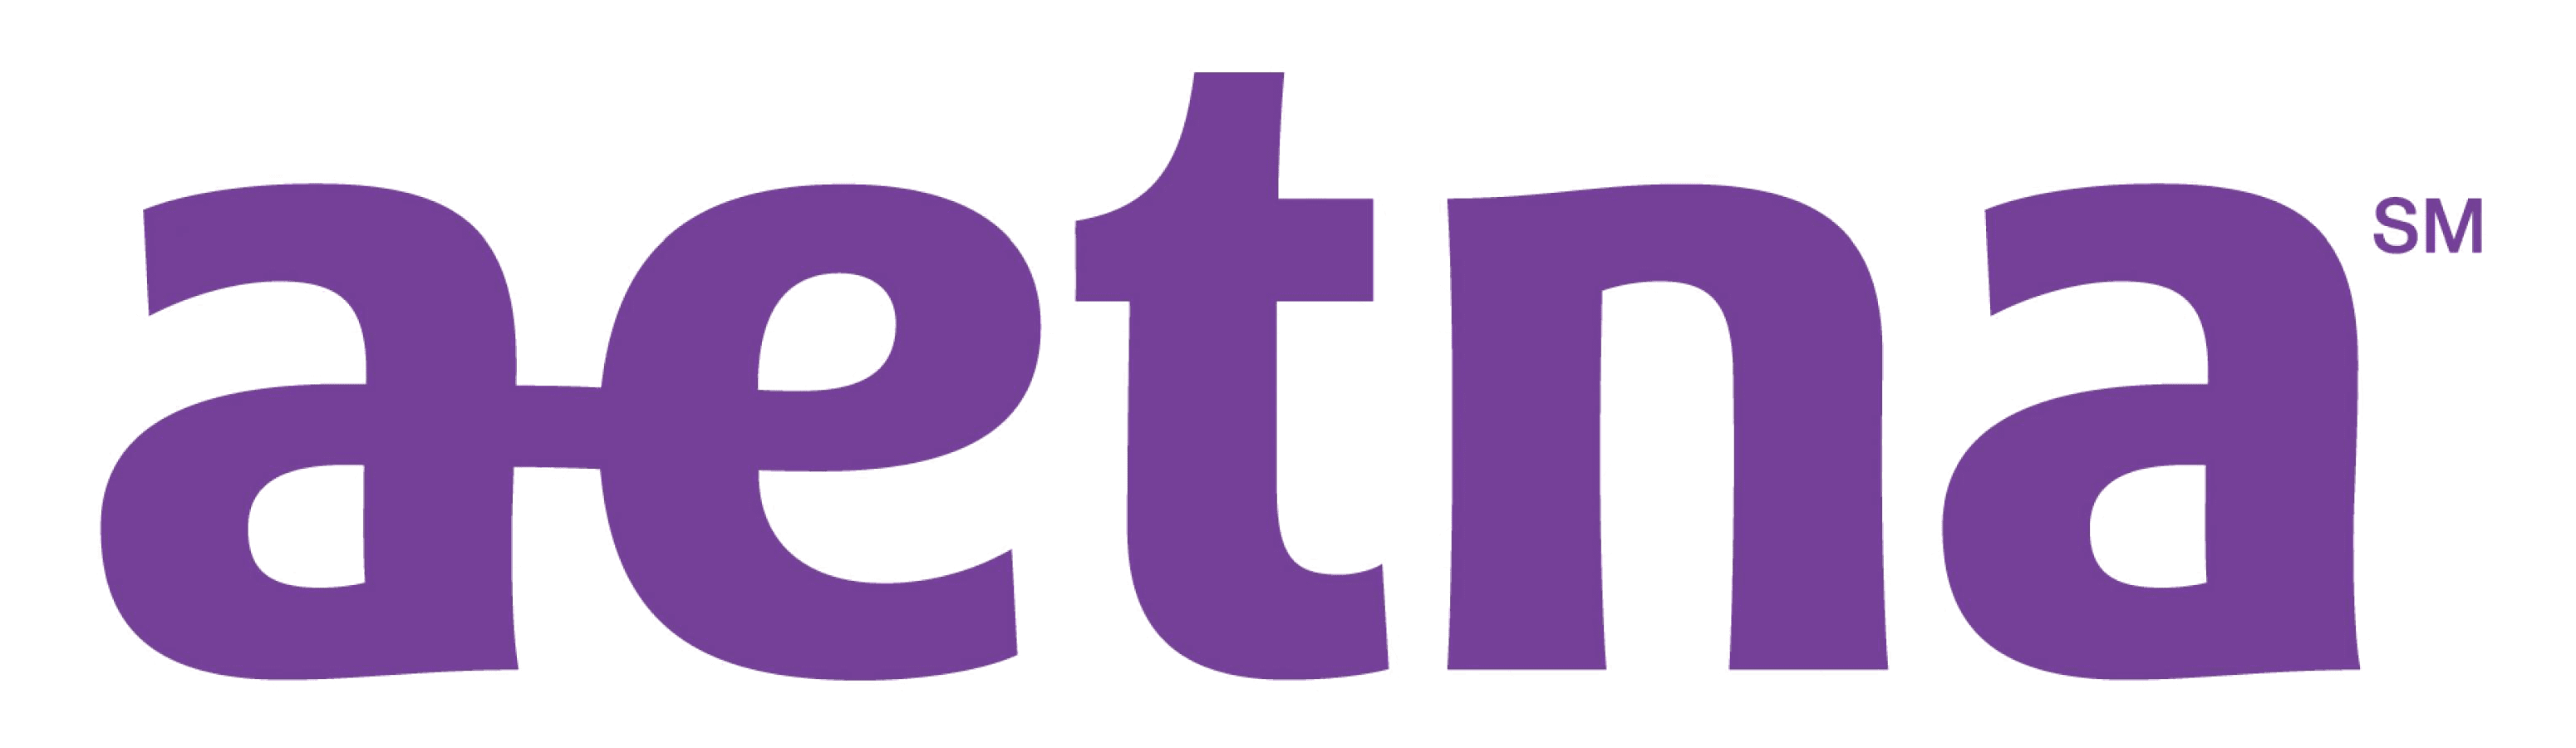 Aetna-Logo-PNG-Transparent-2